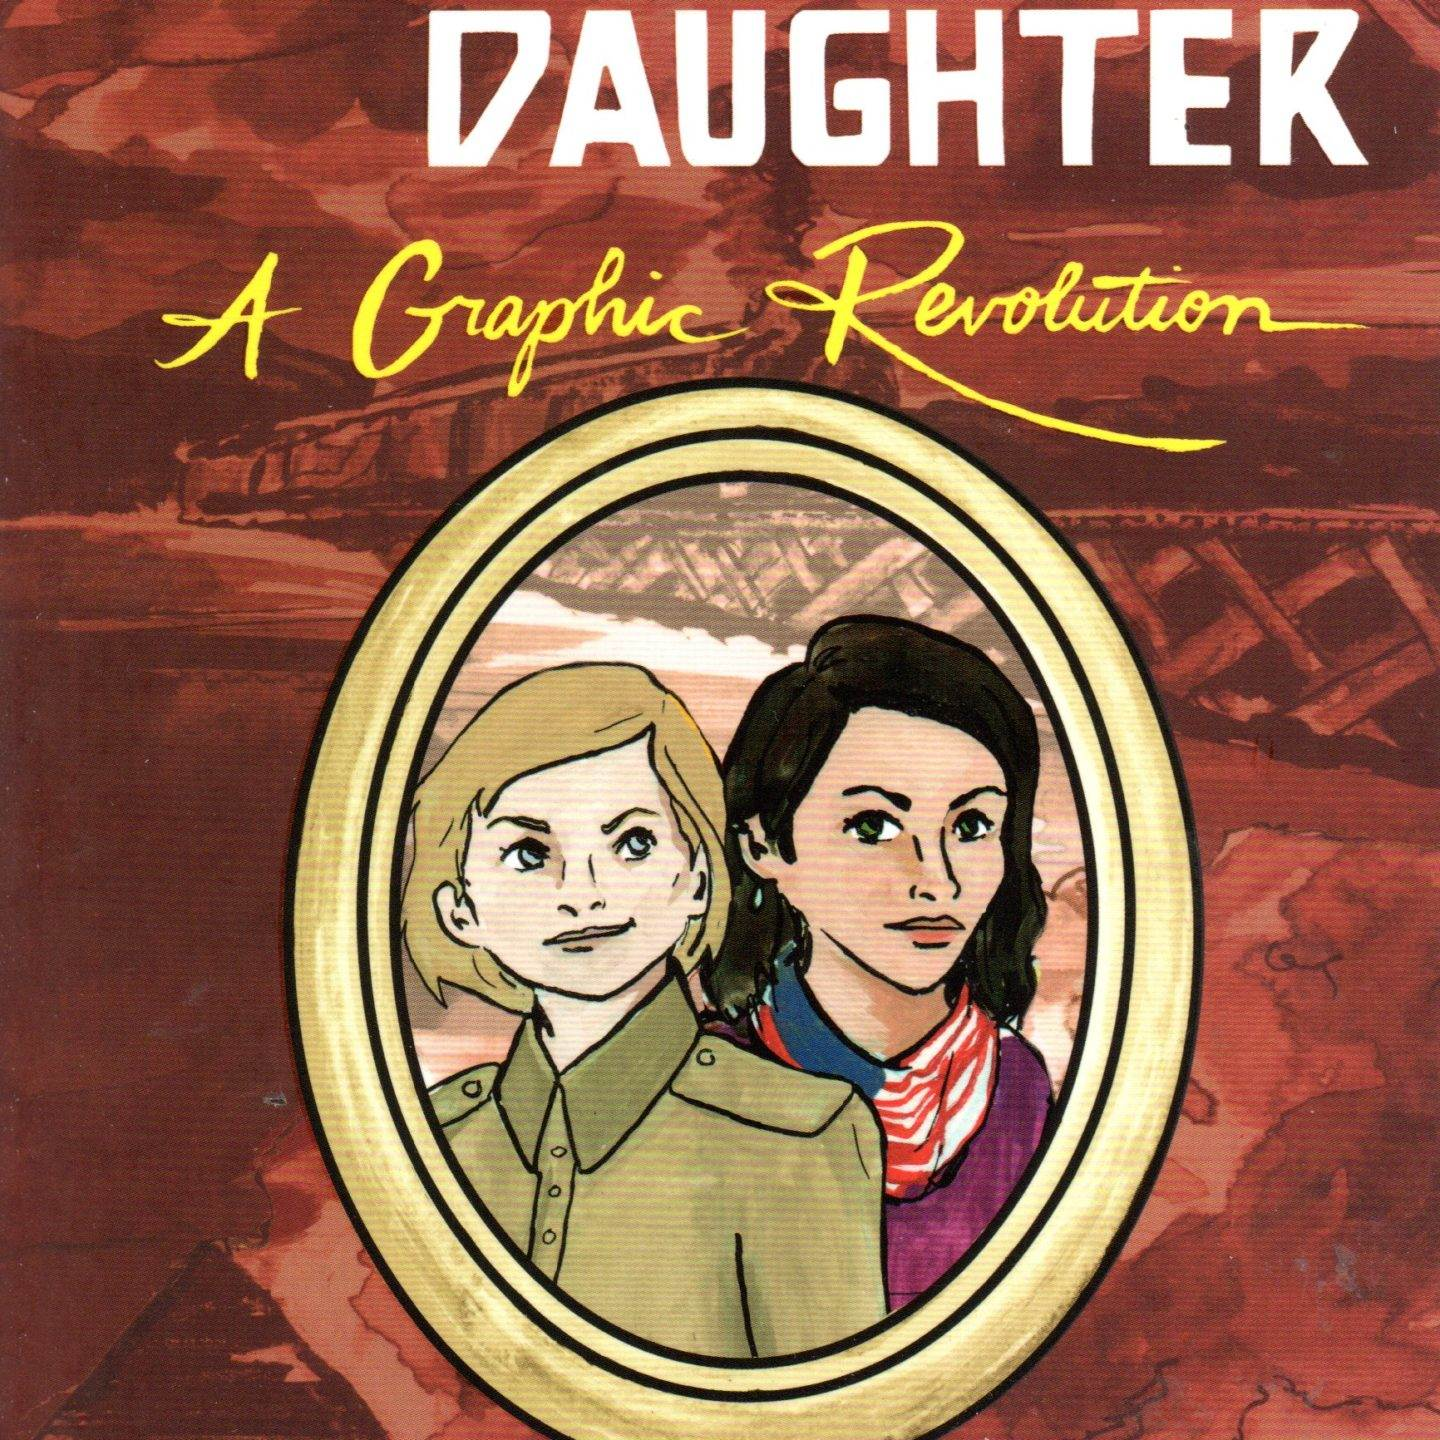 Review time! with 'Soviet Daughter: A Graphic Revolution'